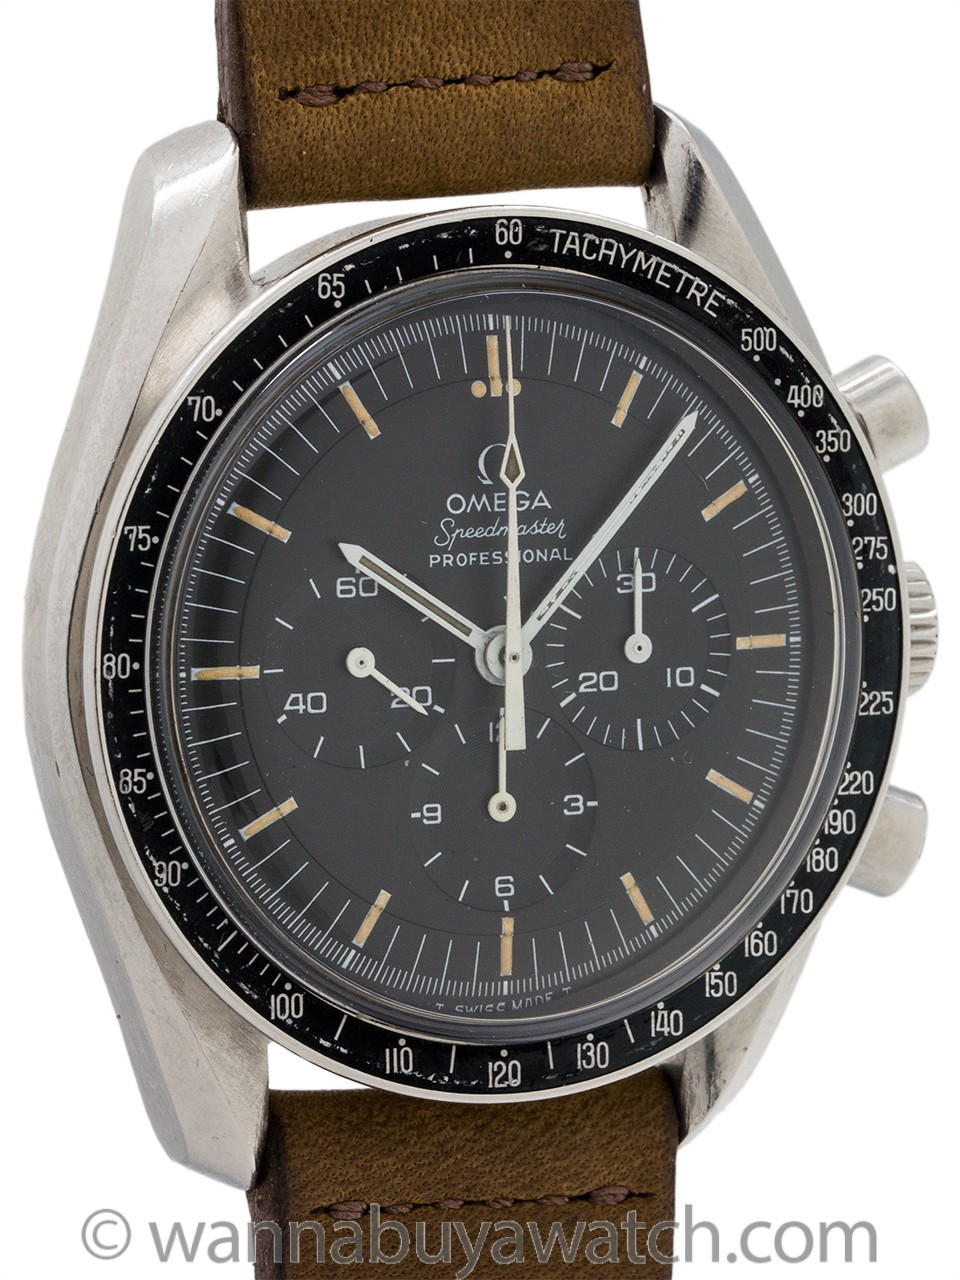 Omega Speedmaster Pre Moon With Ultra Rare 220 Bezel ref 145.022-69 circa 1969